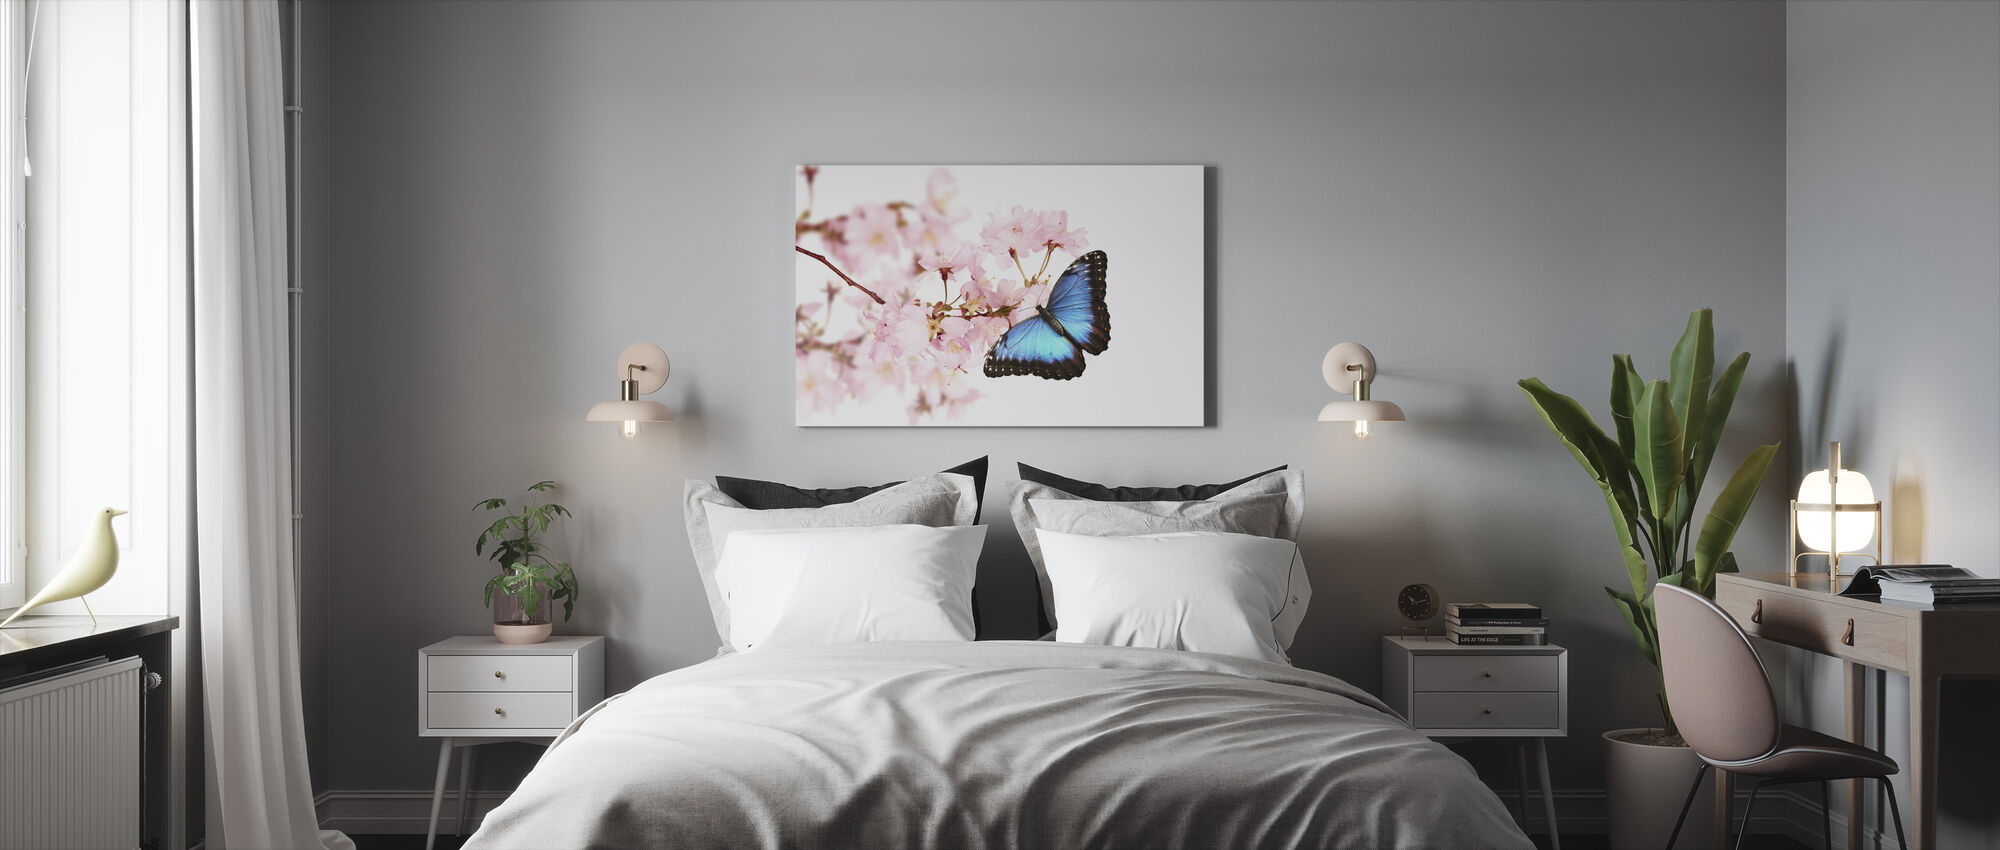 Butterfly Cherry Blossoms - Canvas print - Bedroom